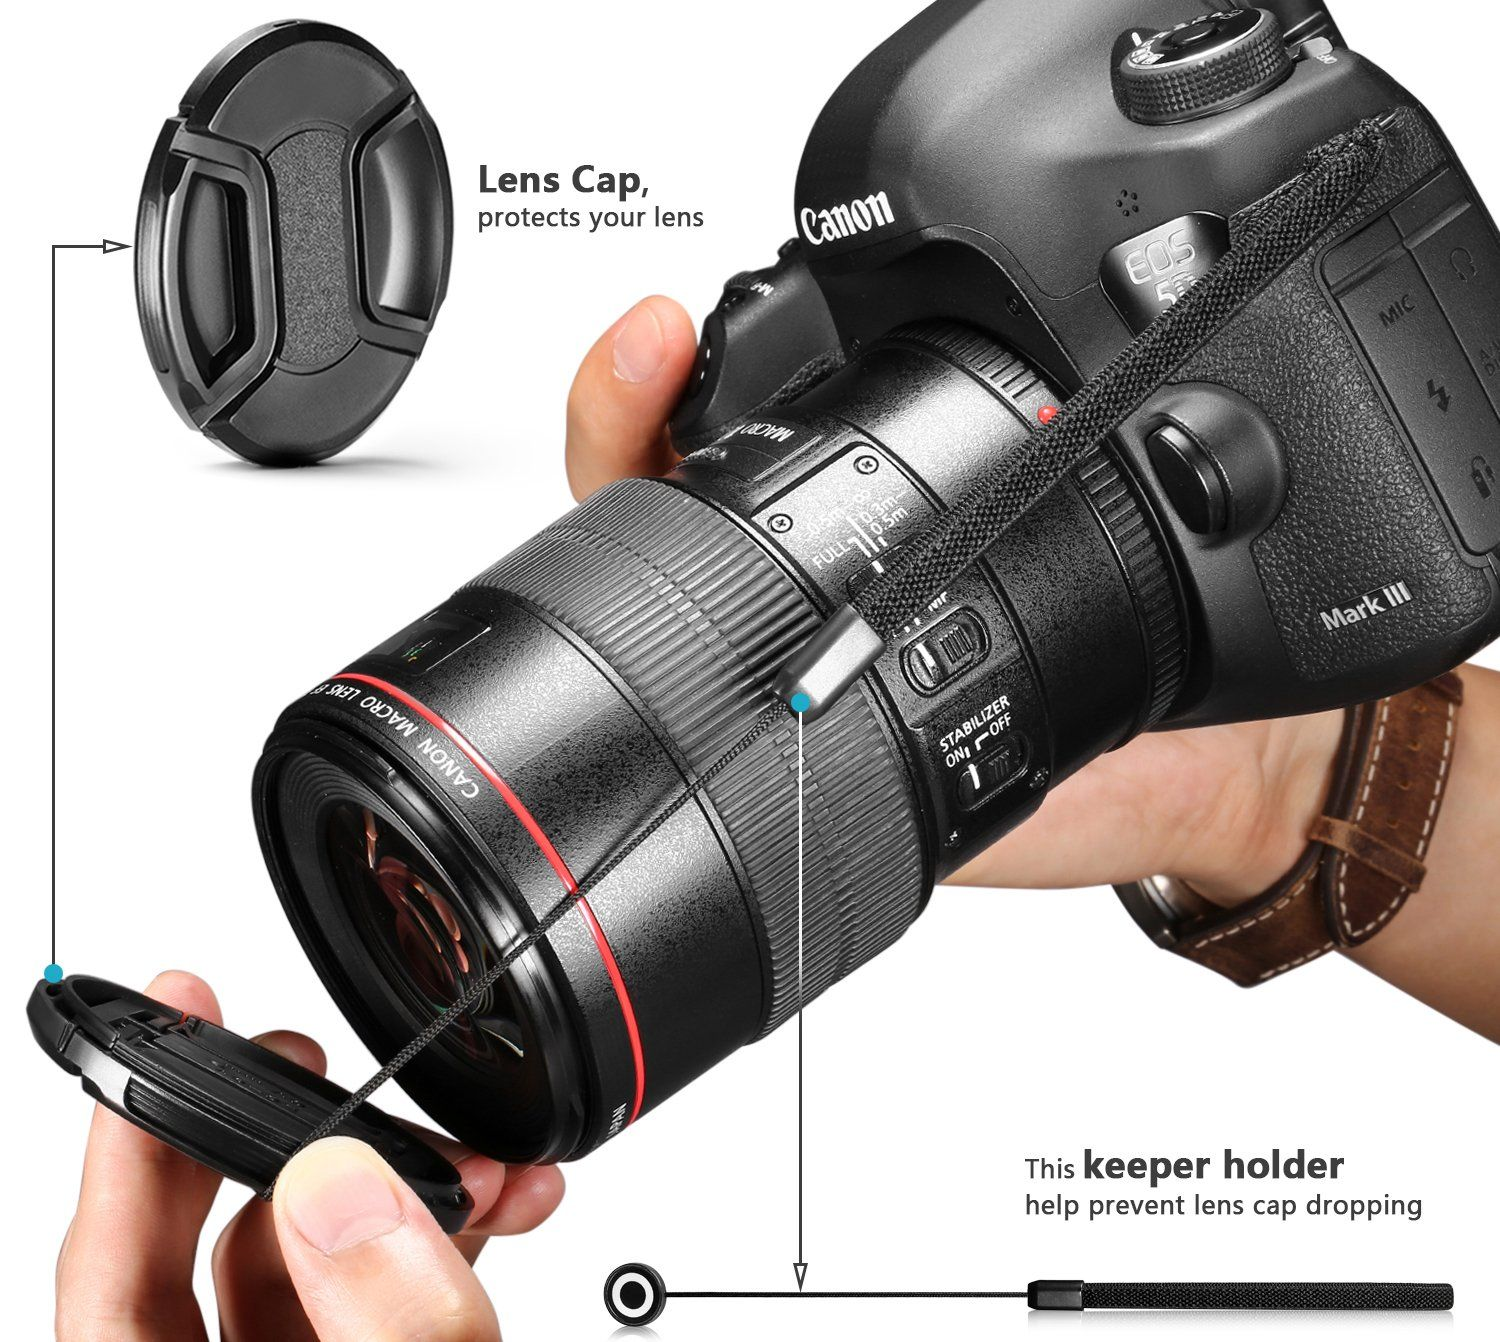 Pin On Camera And Accessories Ideas